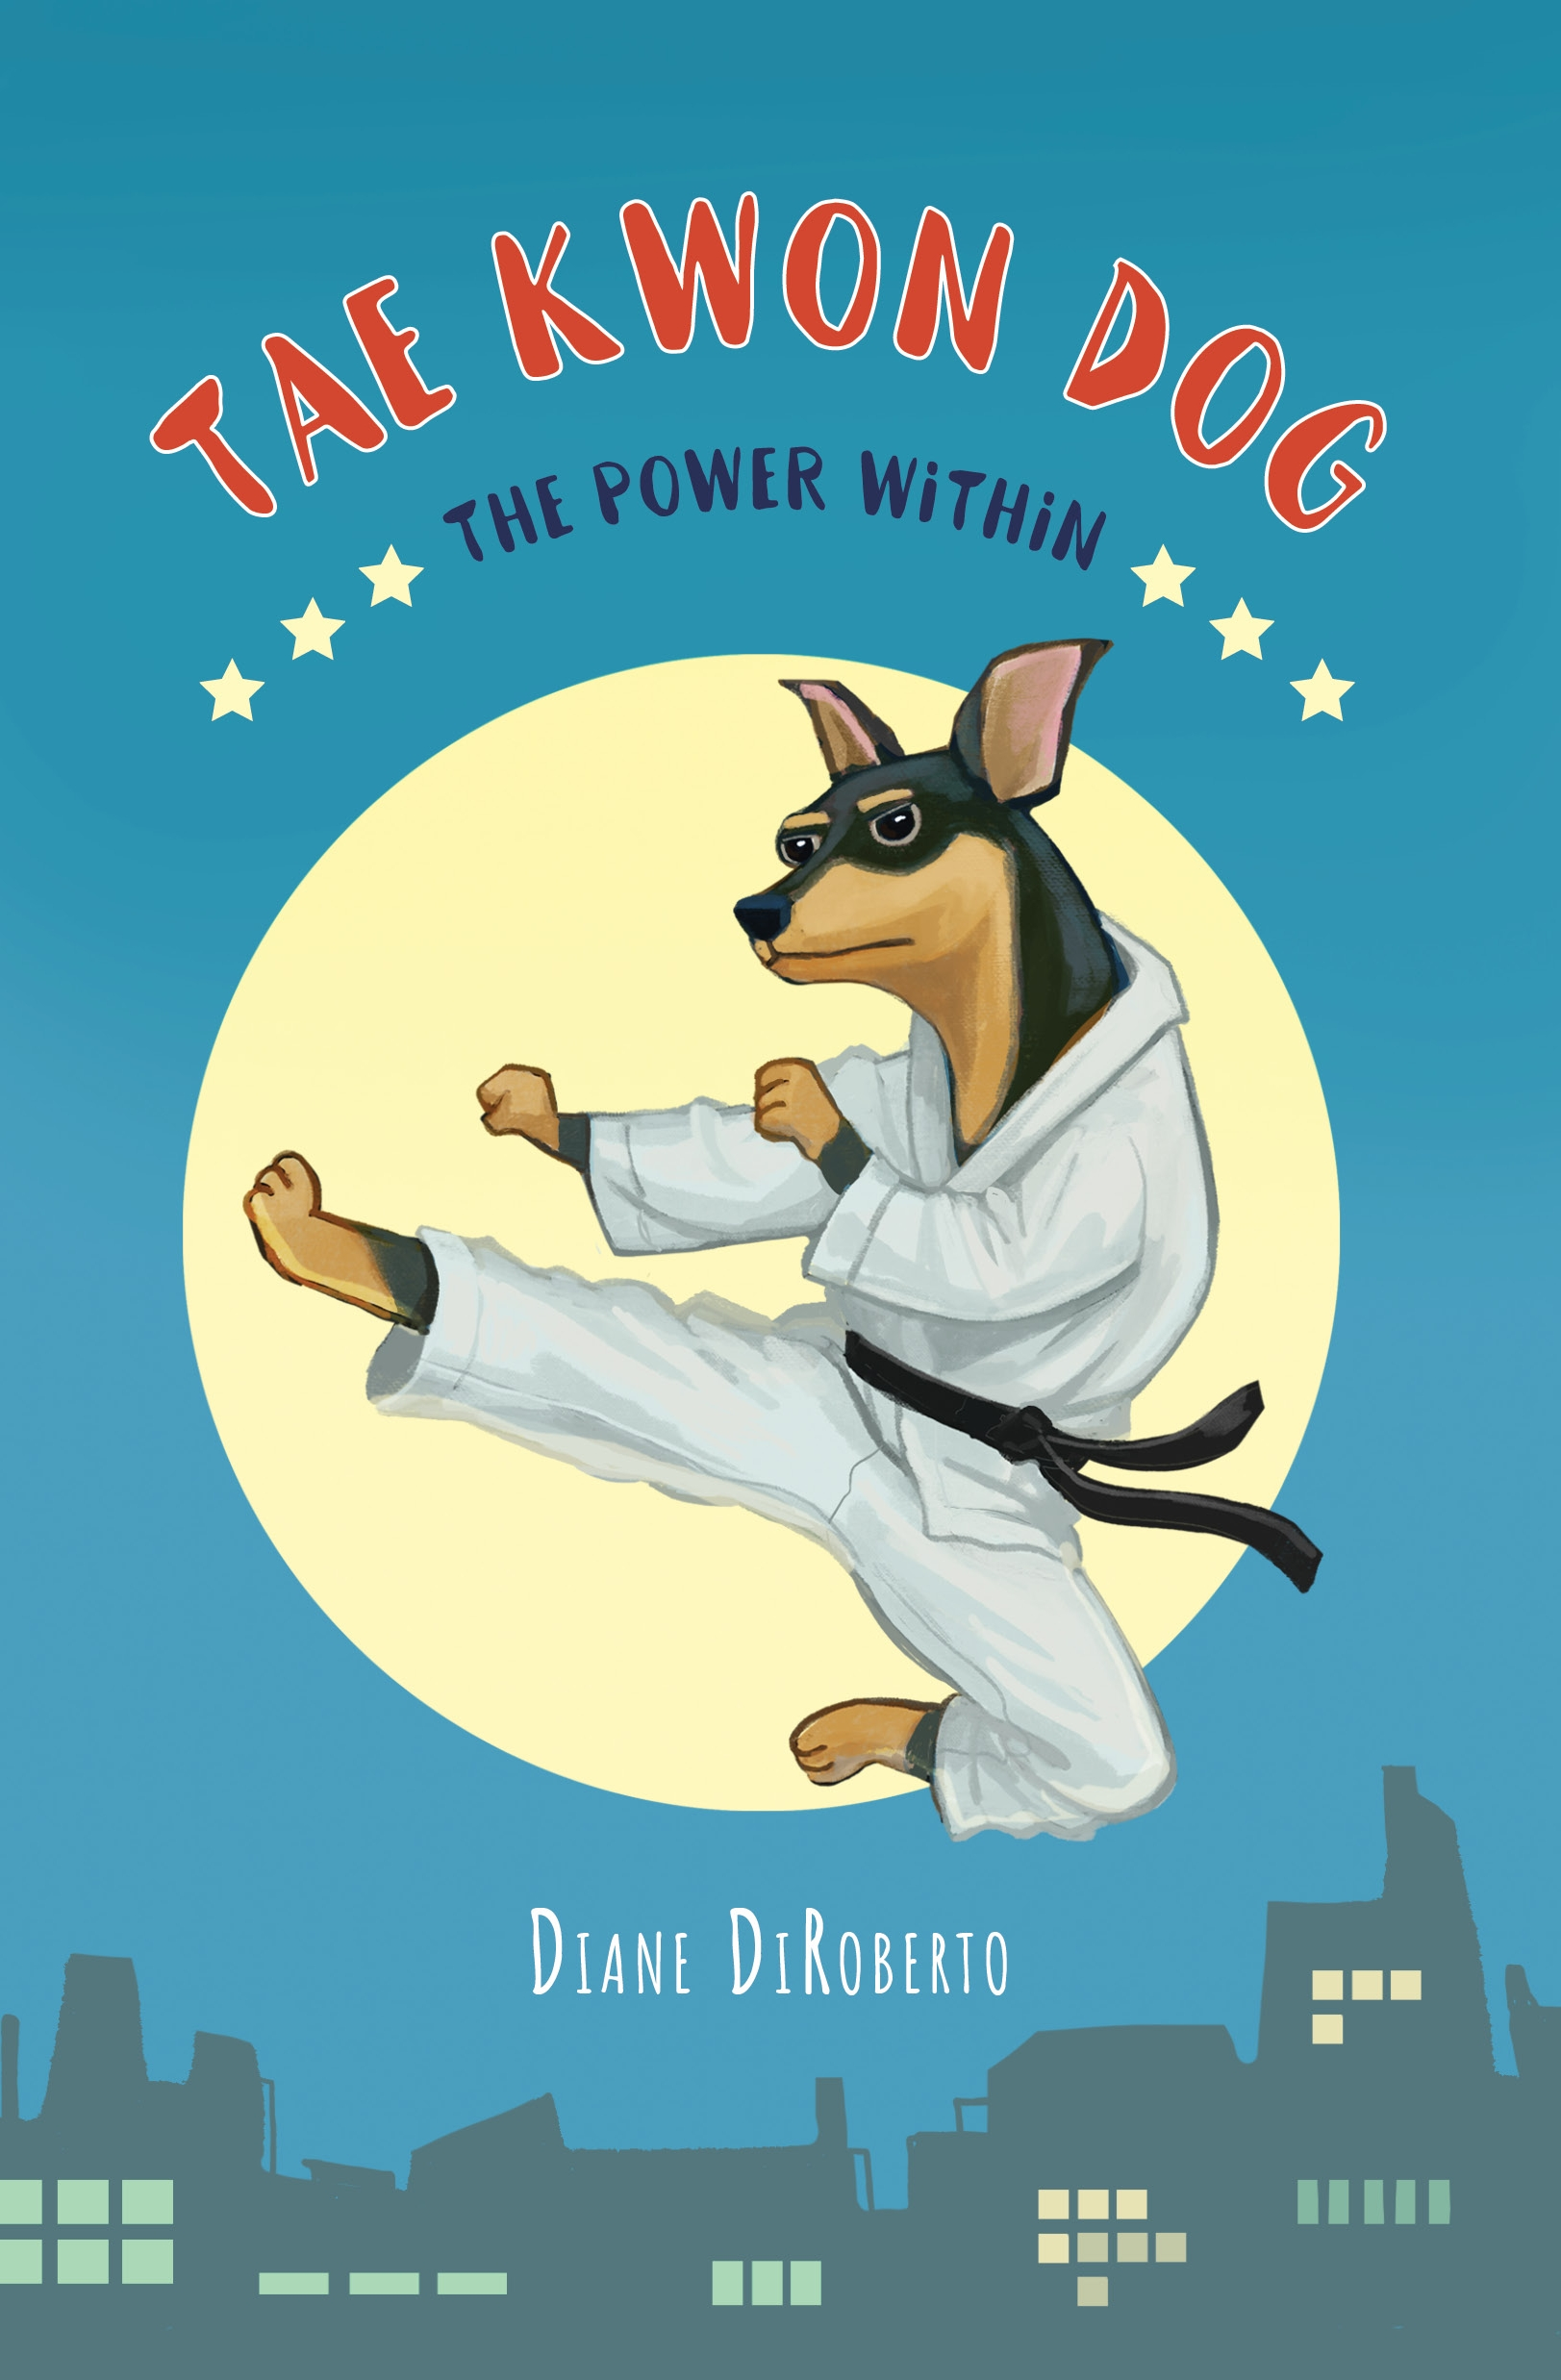 A Runt-of-the-Litter Pup Becomes a Tae Kwon Do Master, Helping Other Down-and-Out Dogs Find Their Power Within in This Inspiring Debut Middle-Grade Series Title